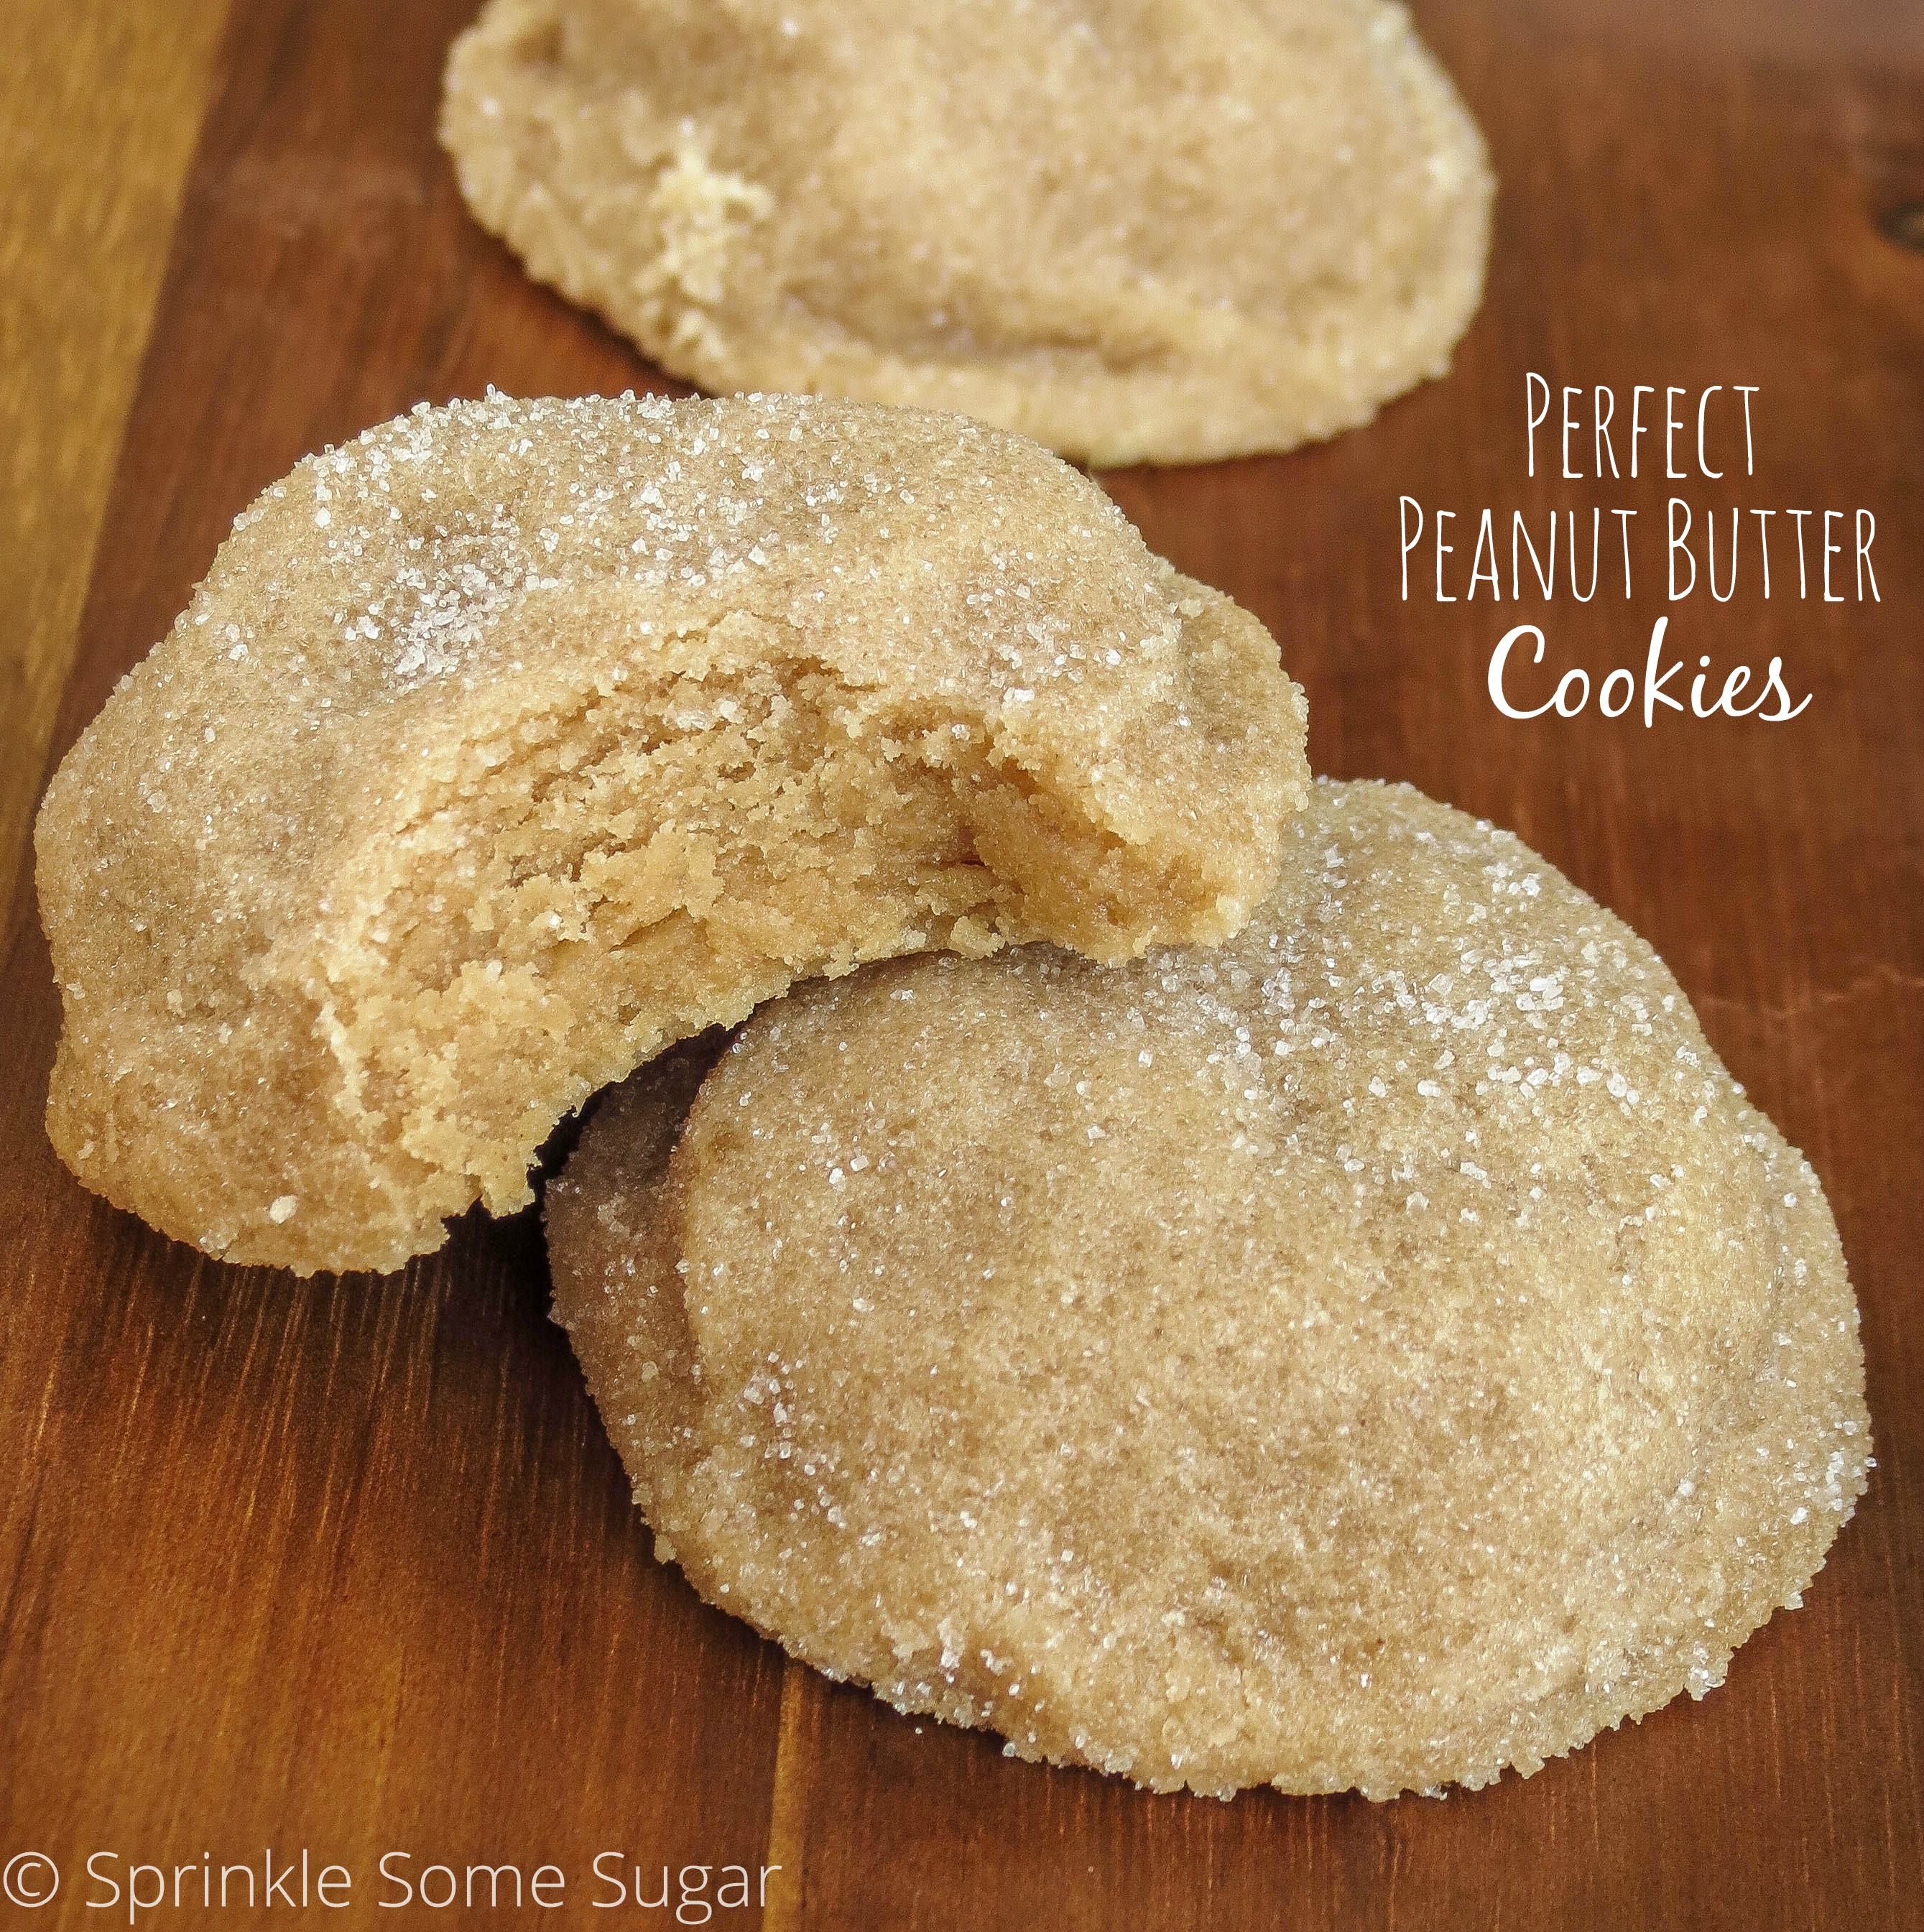 Penut Butter Cookies  Perfect Peanut Butter Cookies Sprinkle Some Sugar